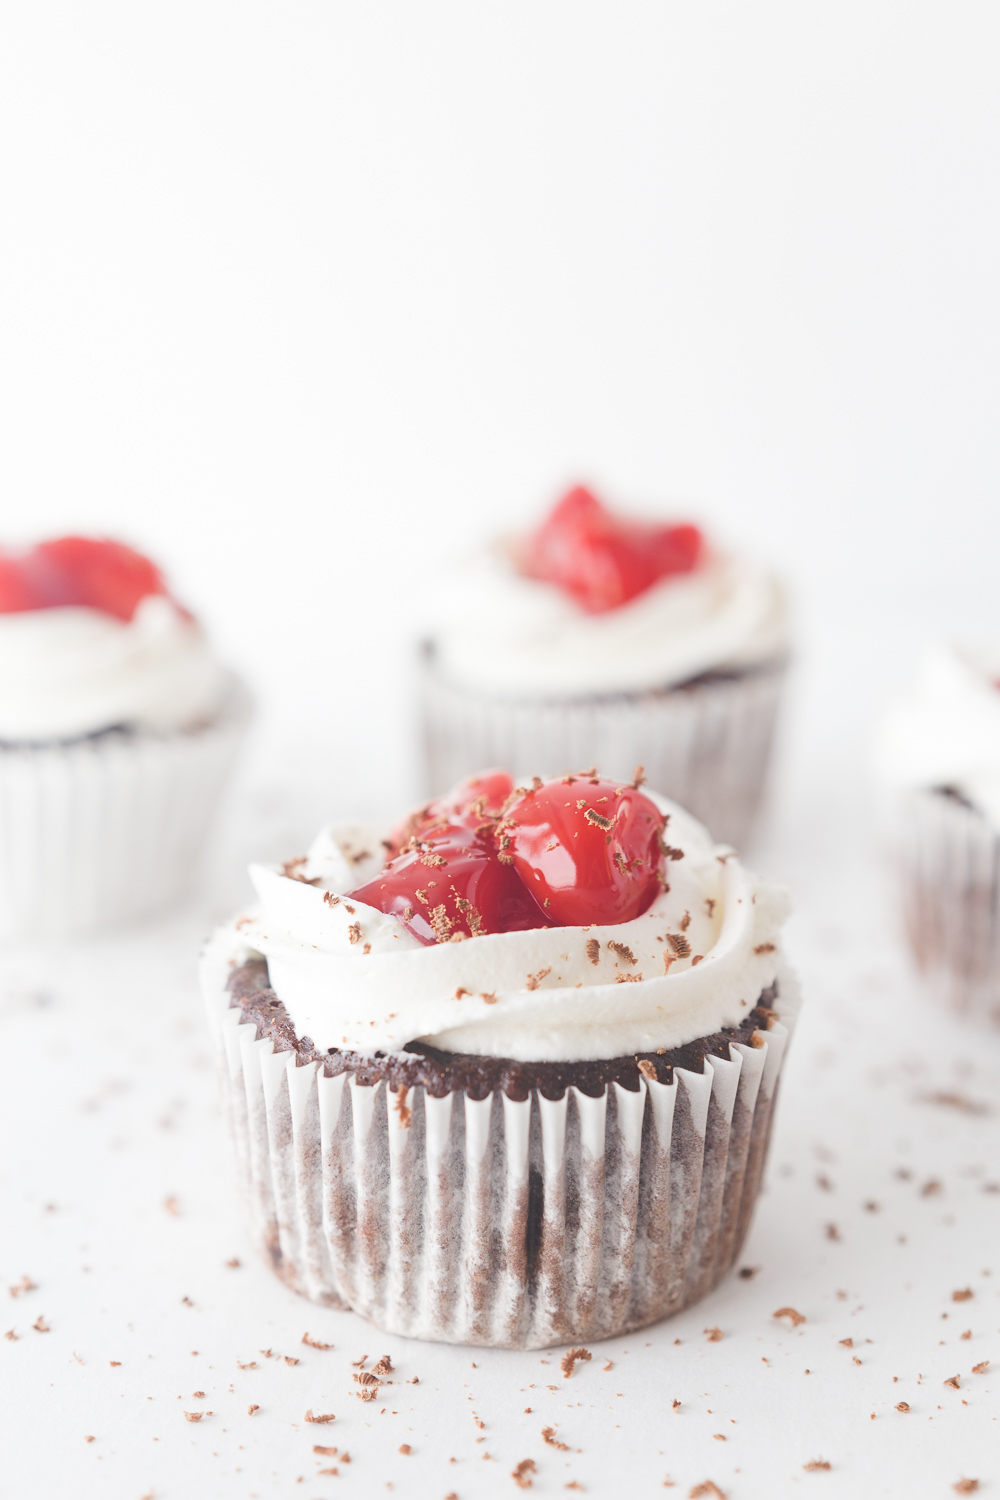 Black Forest Cupcakes: these chocolate cupcakes are stuffed and topped with cherry pie filling and a delicious cream cheese frosting. Great for holiday parties and everyday gatherings.